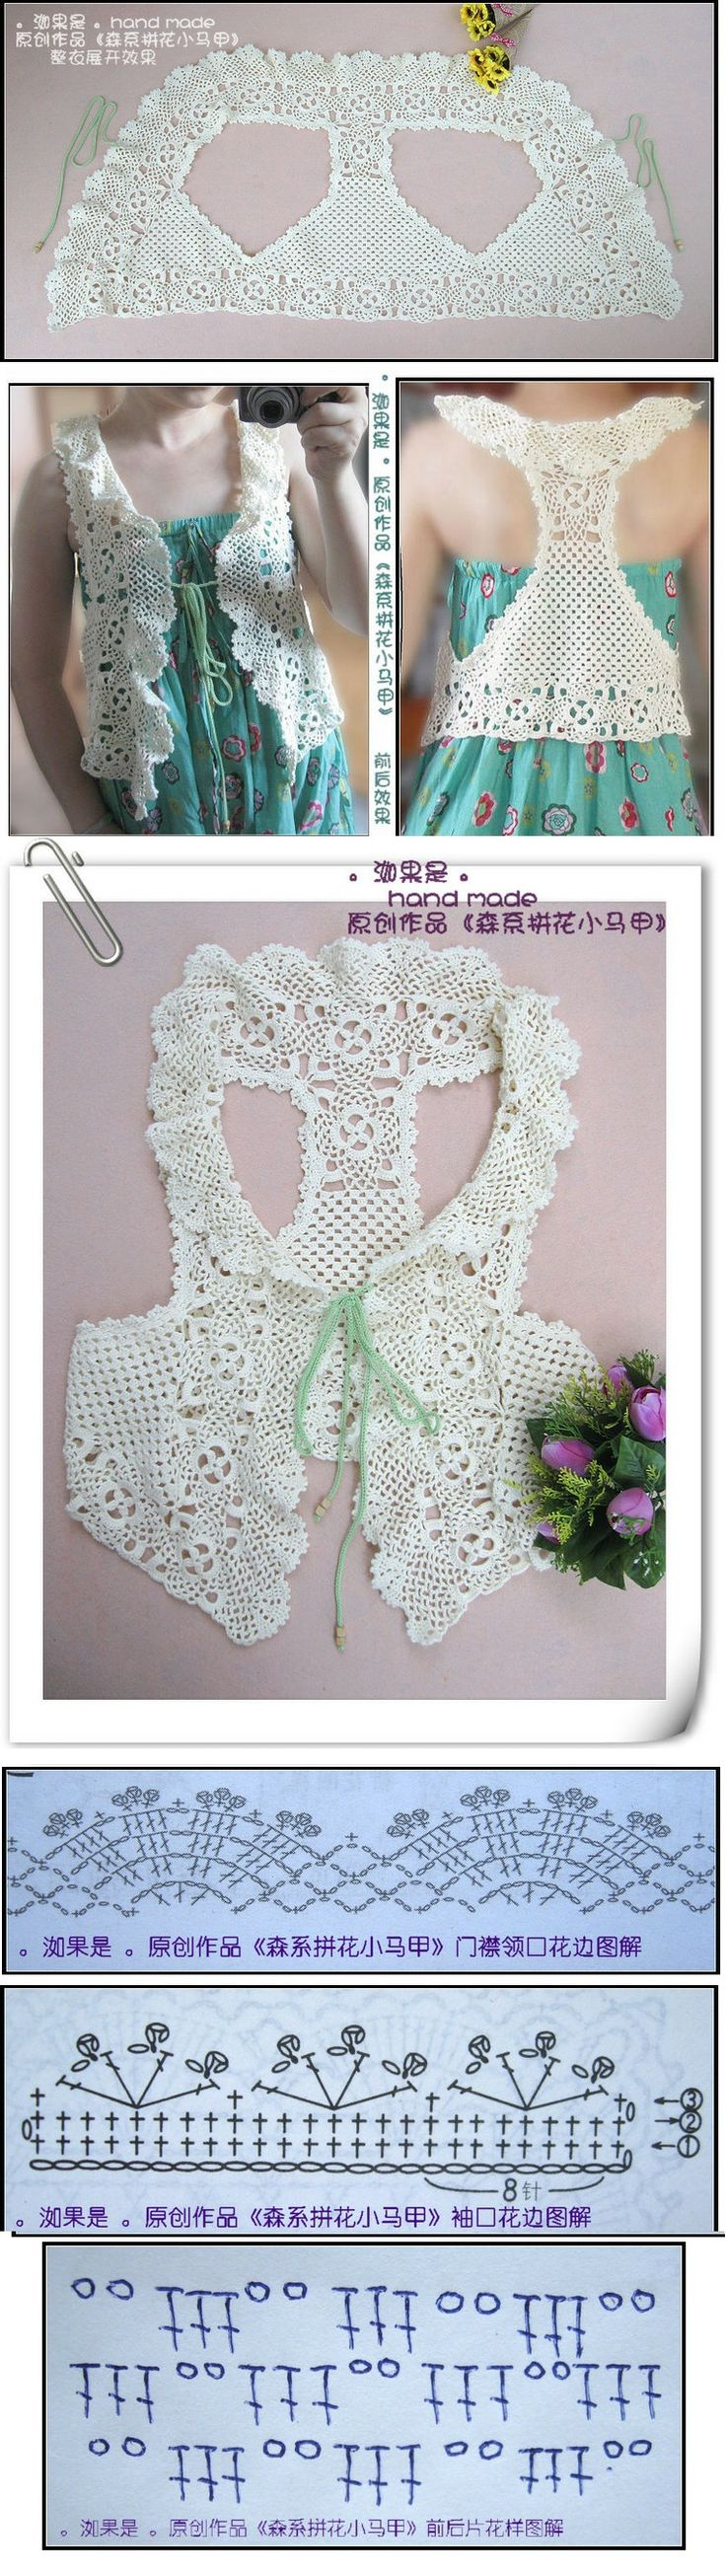 Chaleco de ganchillo Original.... Beautiful Crochet - with pictorial and diagrams!